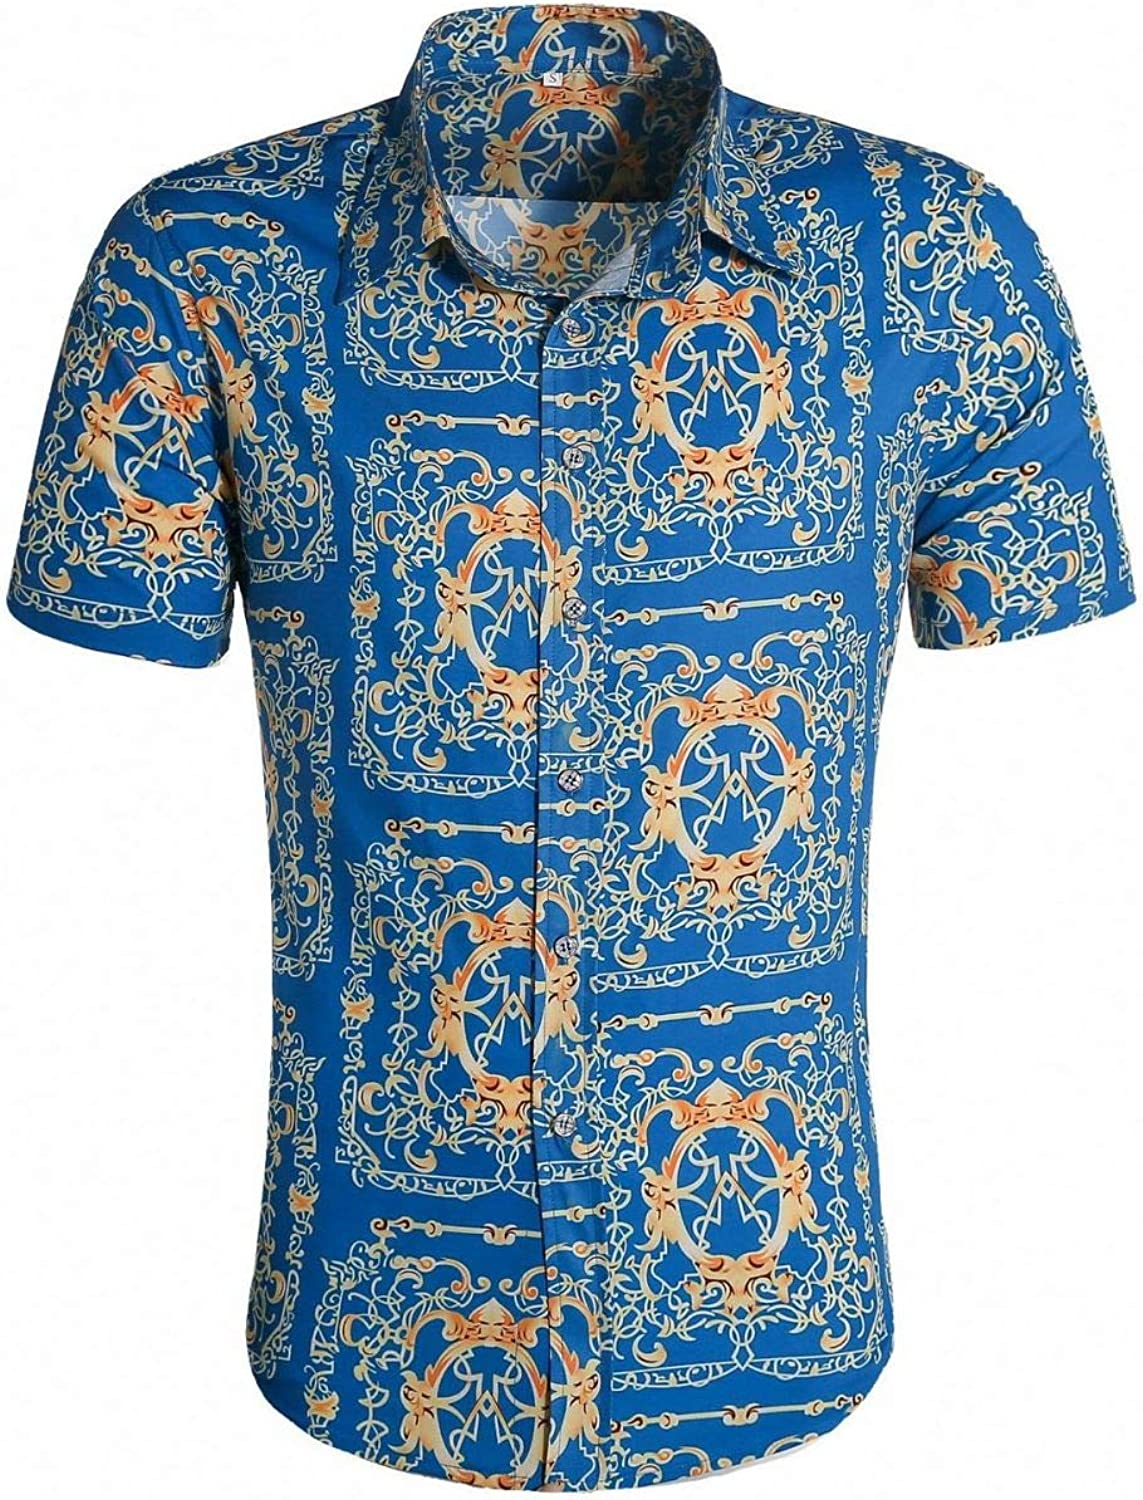 Luandge Men's Trend Printing Daily bargain sale Short-Sleeved F Shirt Notched Max 54% OFF Lapel